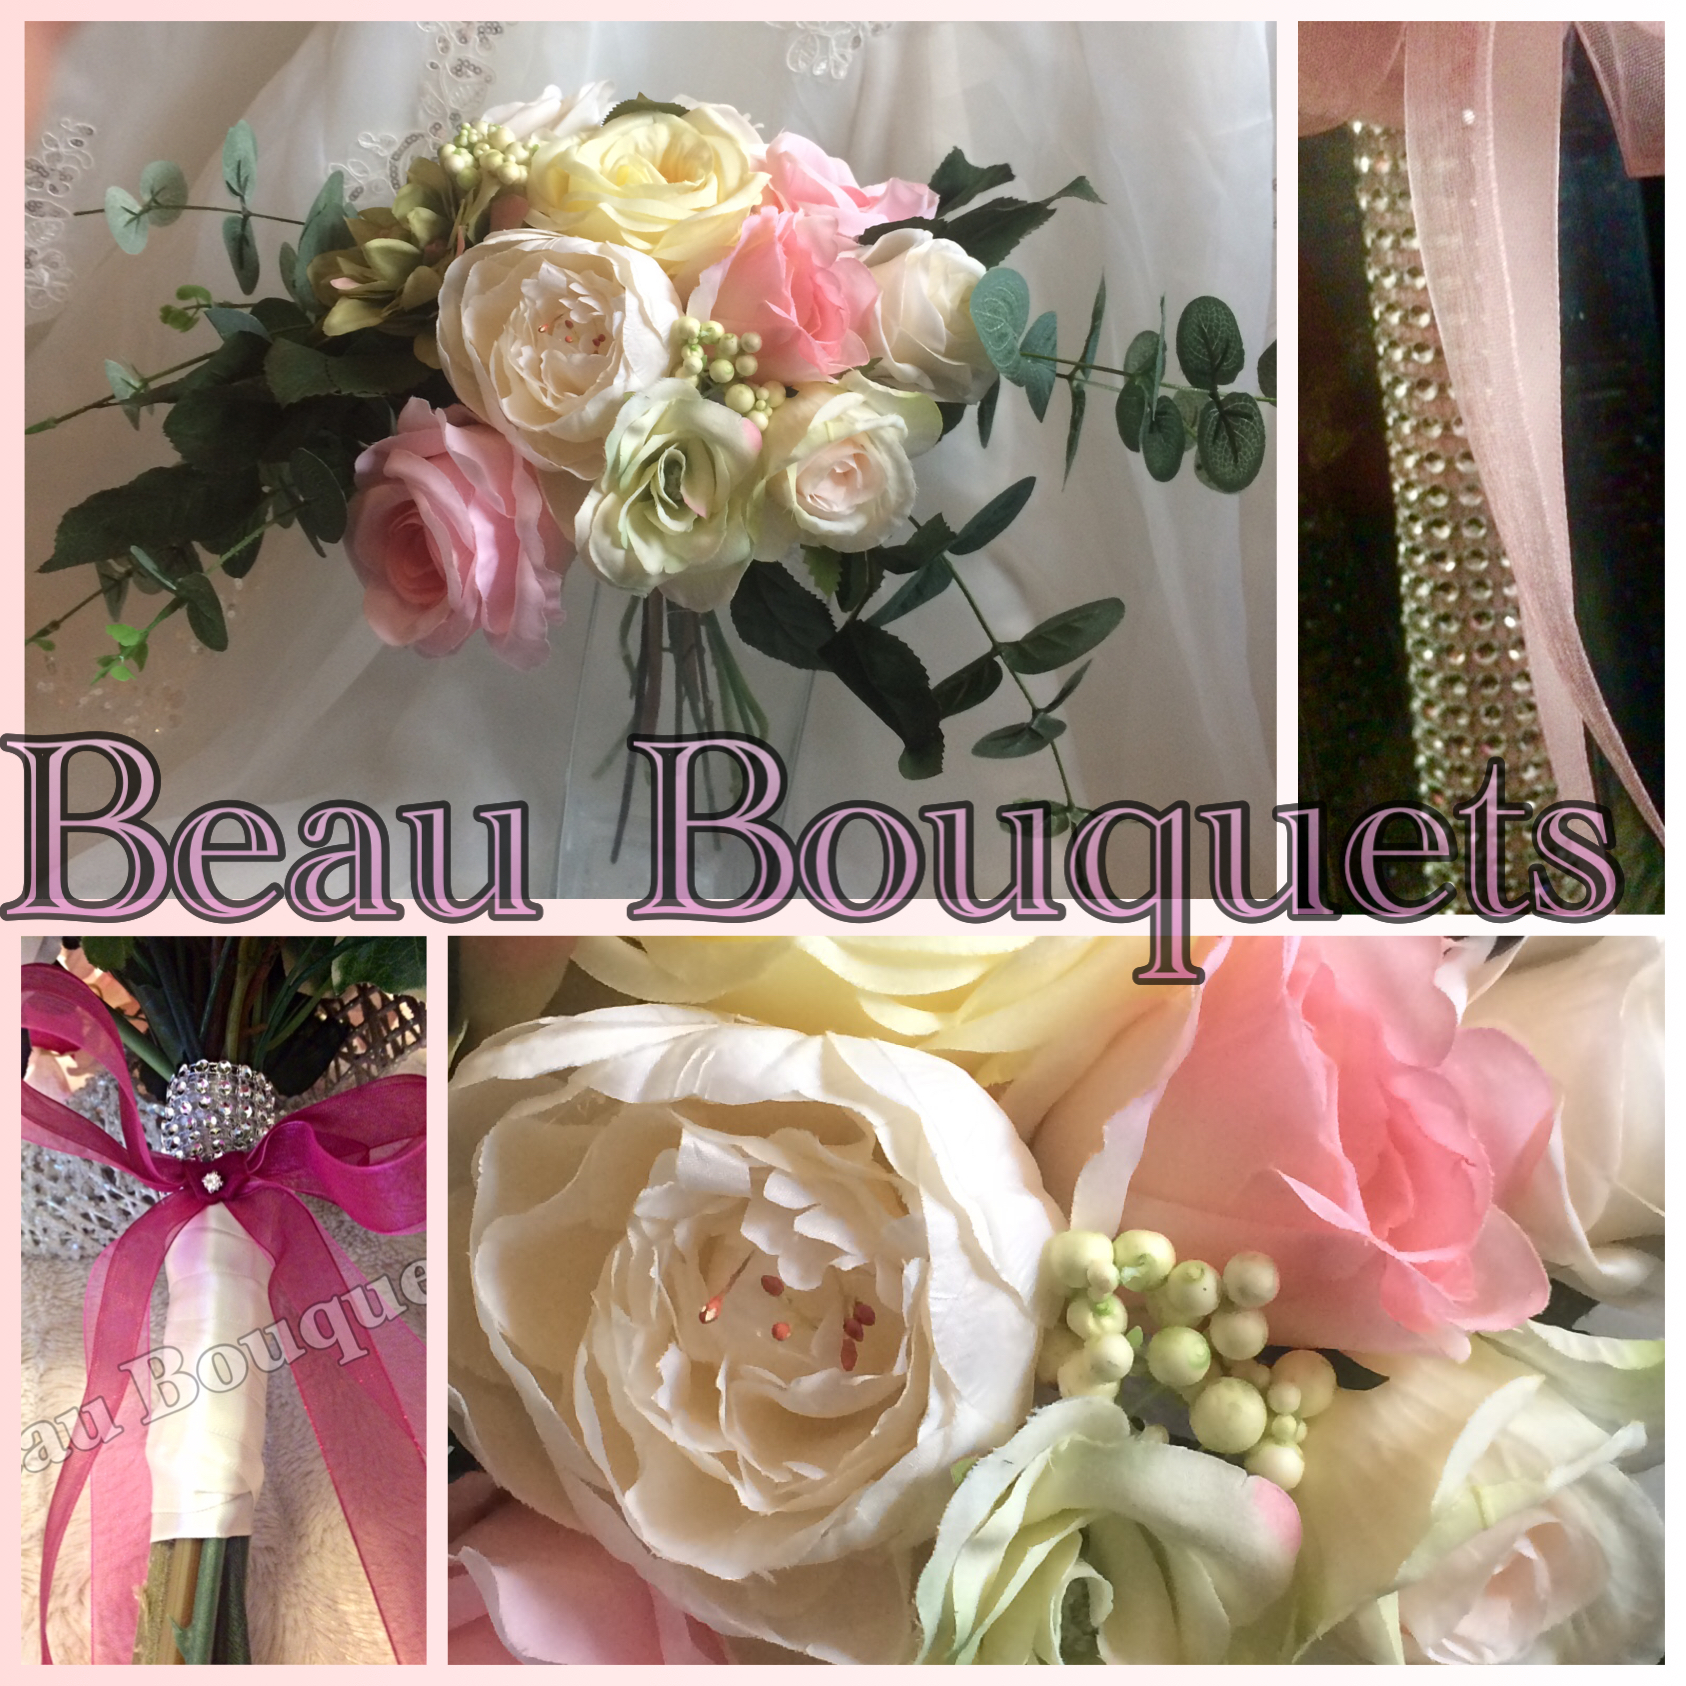 CHERISH - Large Rose & Peony Spray Bride Bouquet Package Large Rose & Peony Spray Bride Bouquet with Eucalyptus leaves. In Pastel Pinks Lemons an